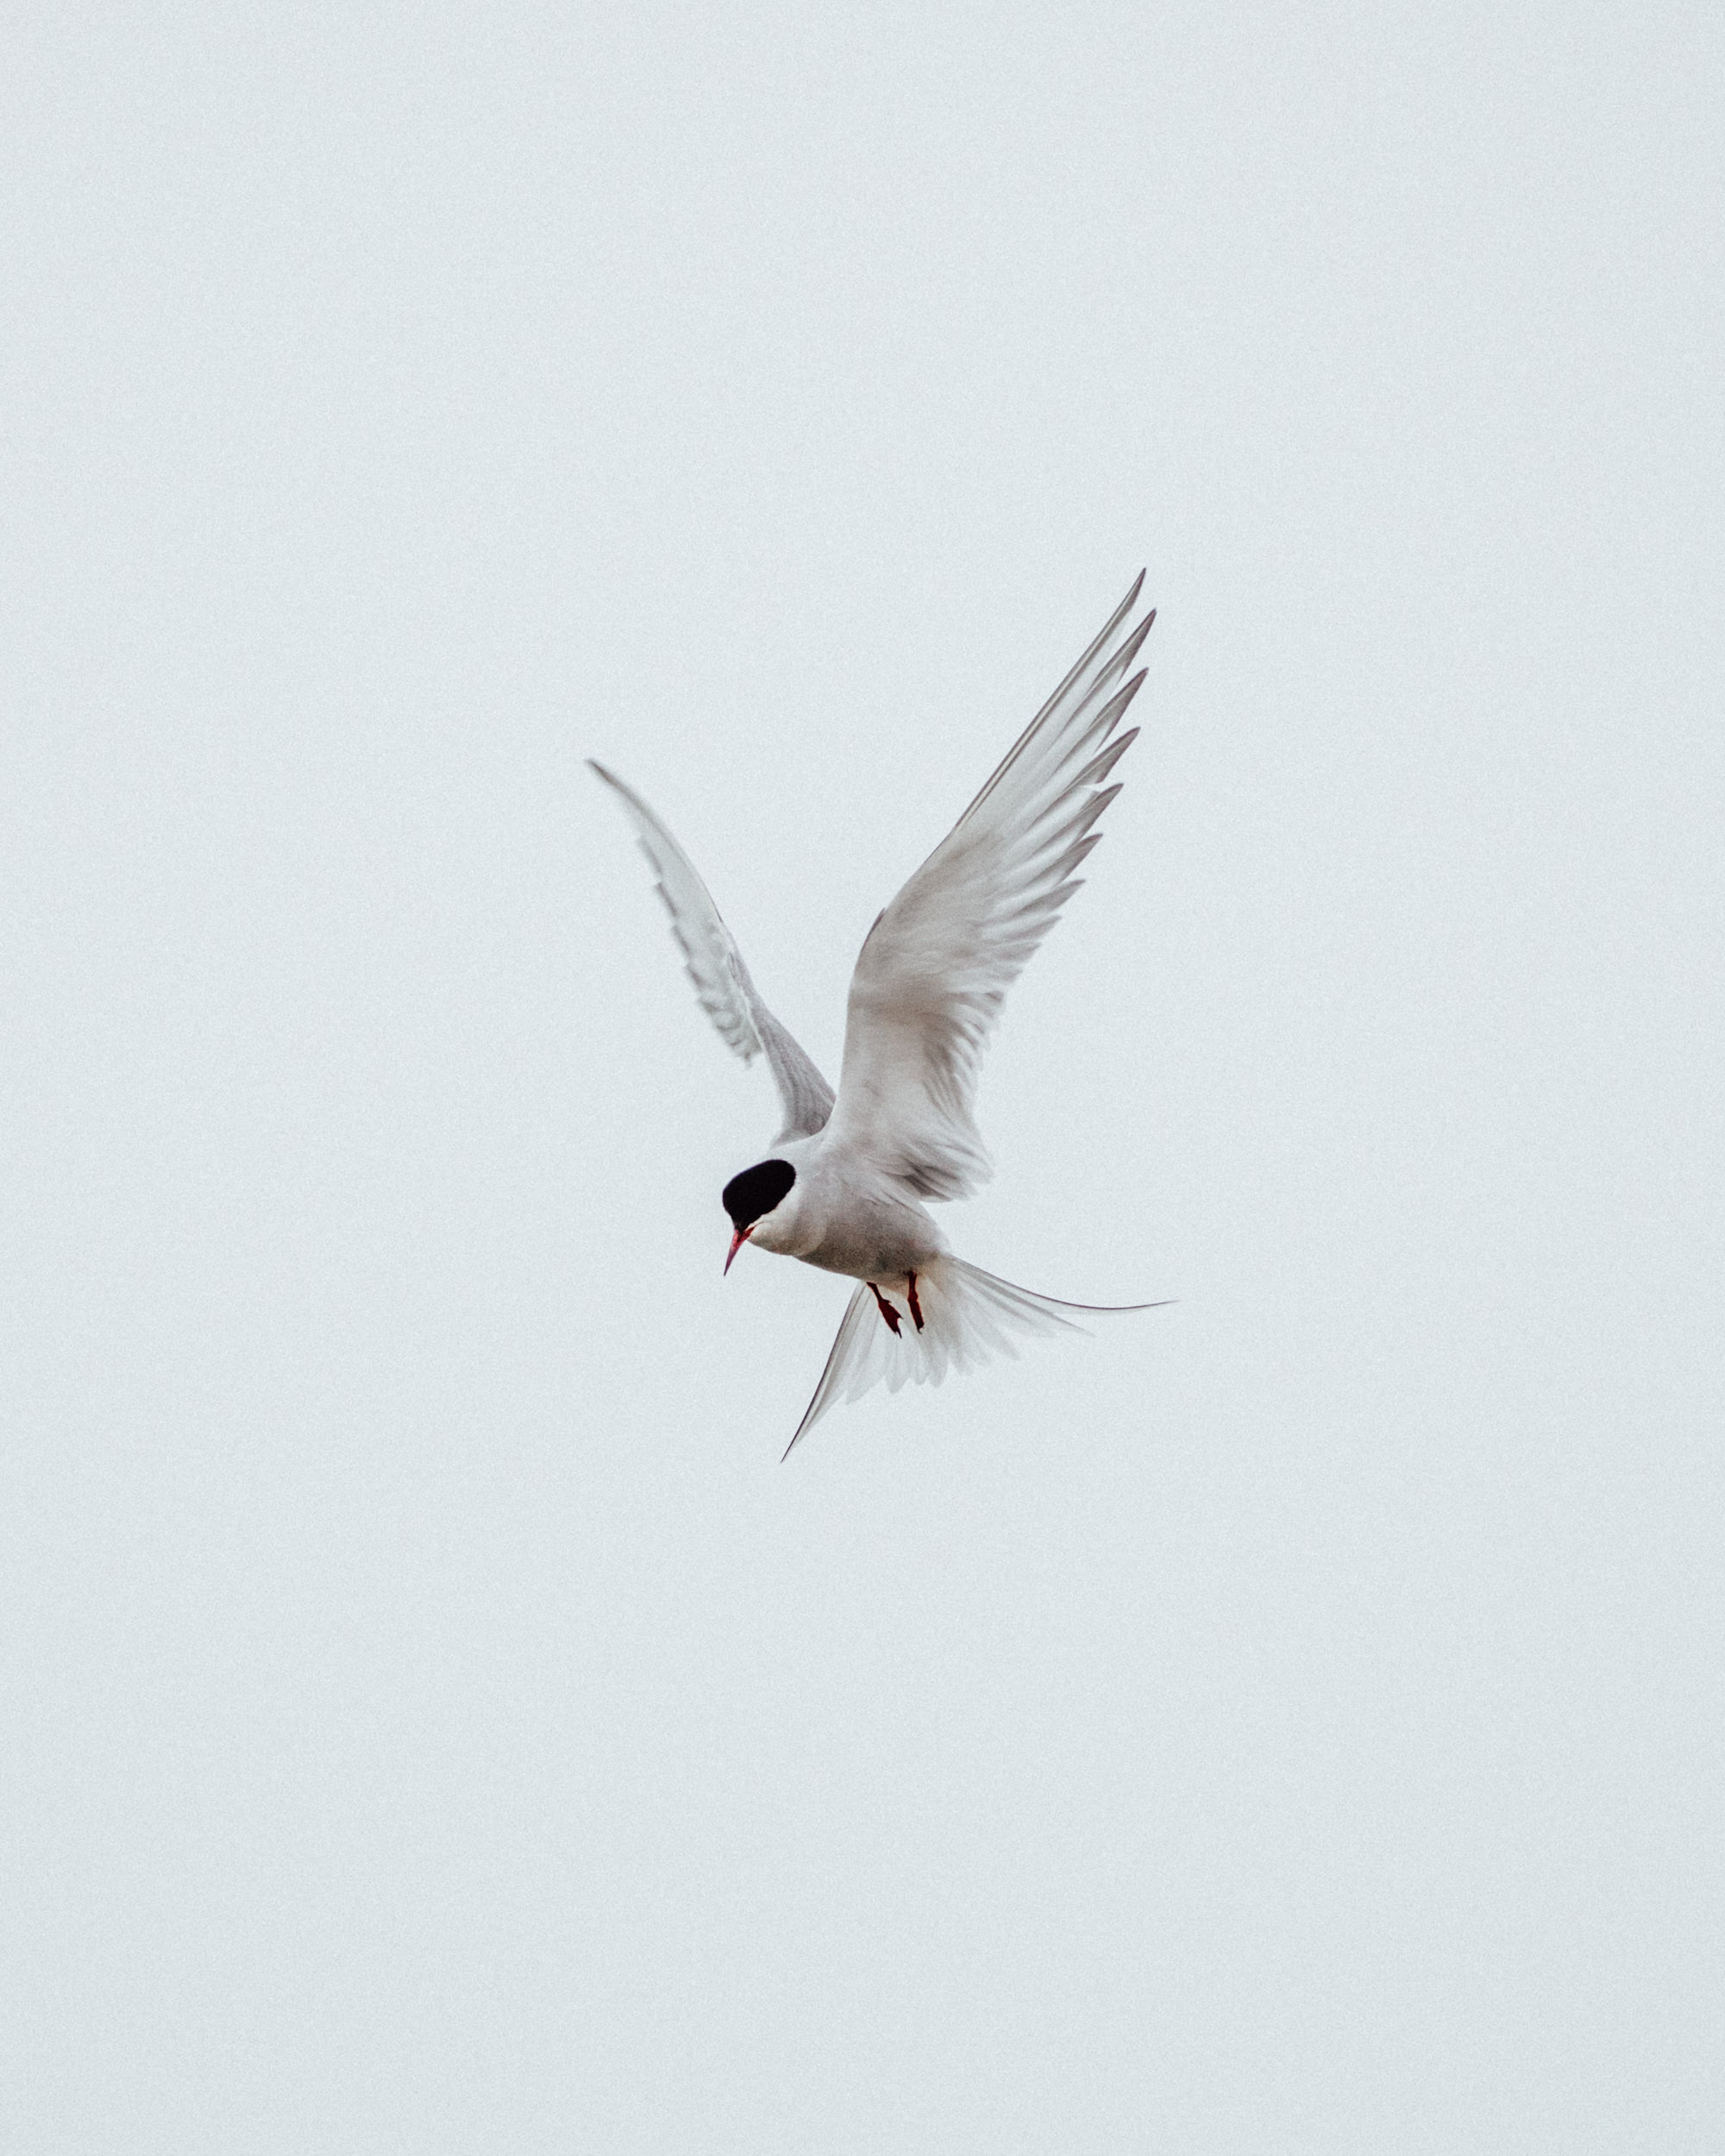 Arctic tern white bird in Svalbard Spitsbergen via @finduslost